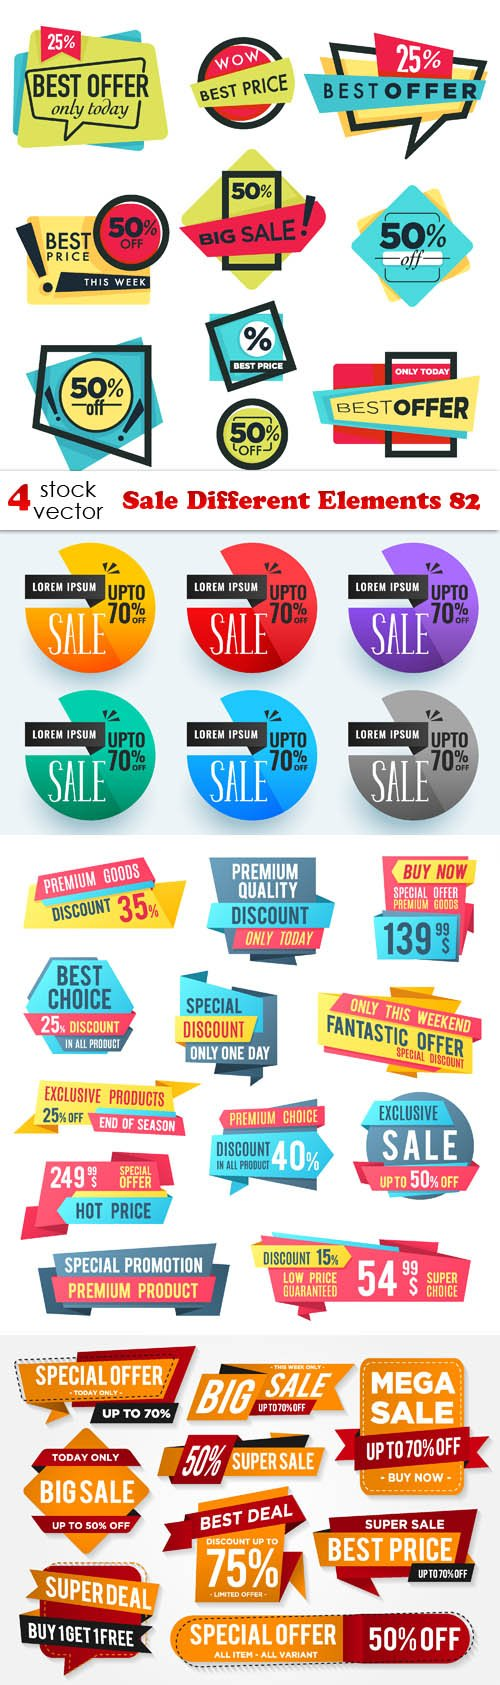 Vectors - Sale Different Elements 82